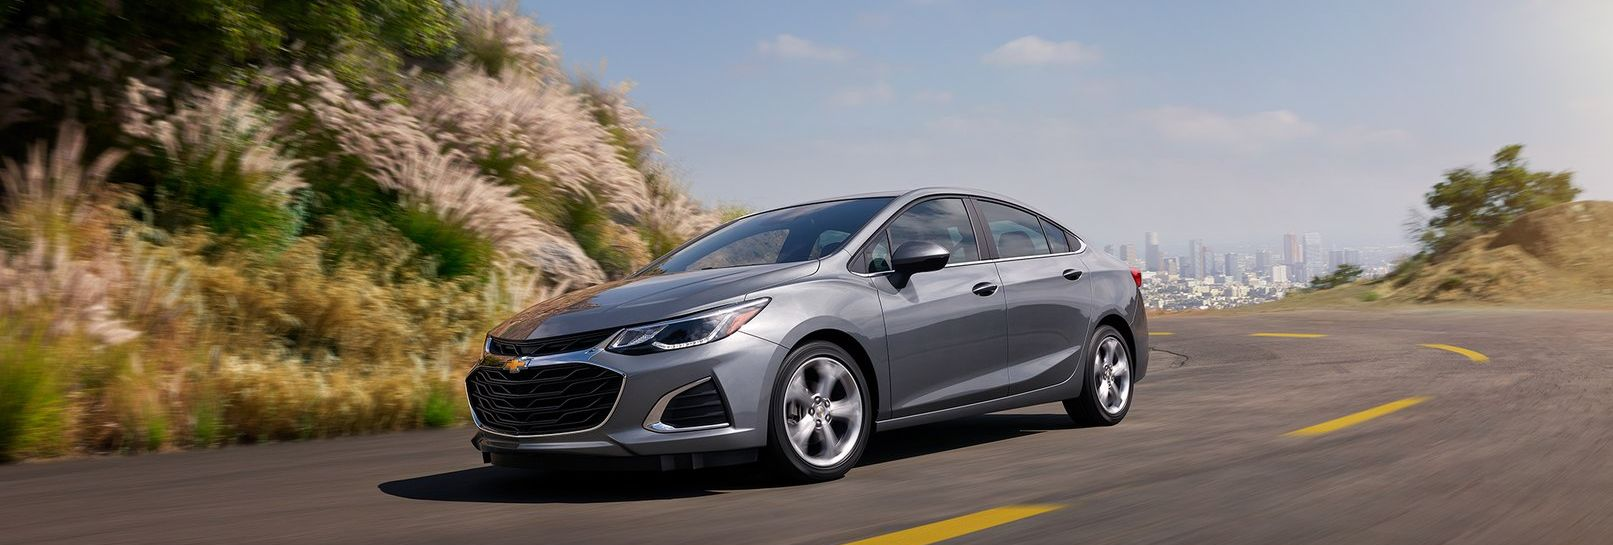 2019 Chevrolet Cruze Financing near Claremore, OK